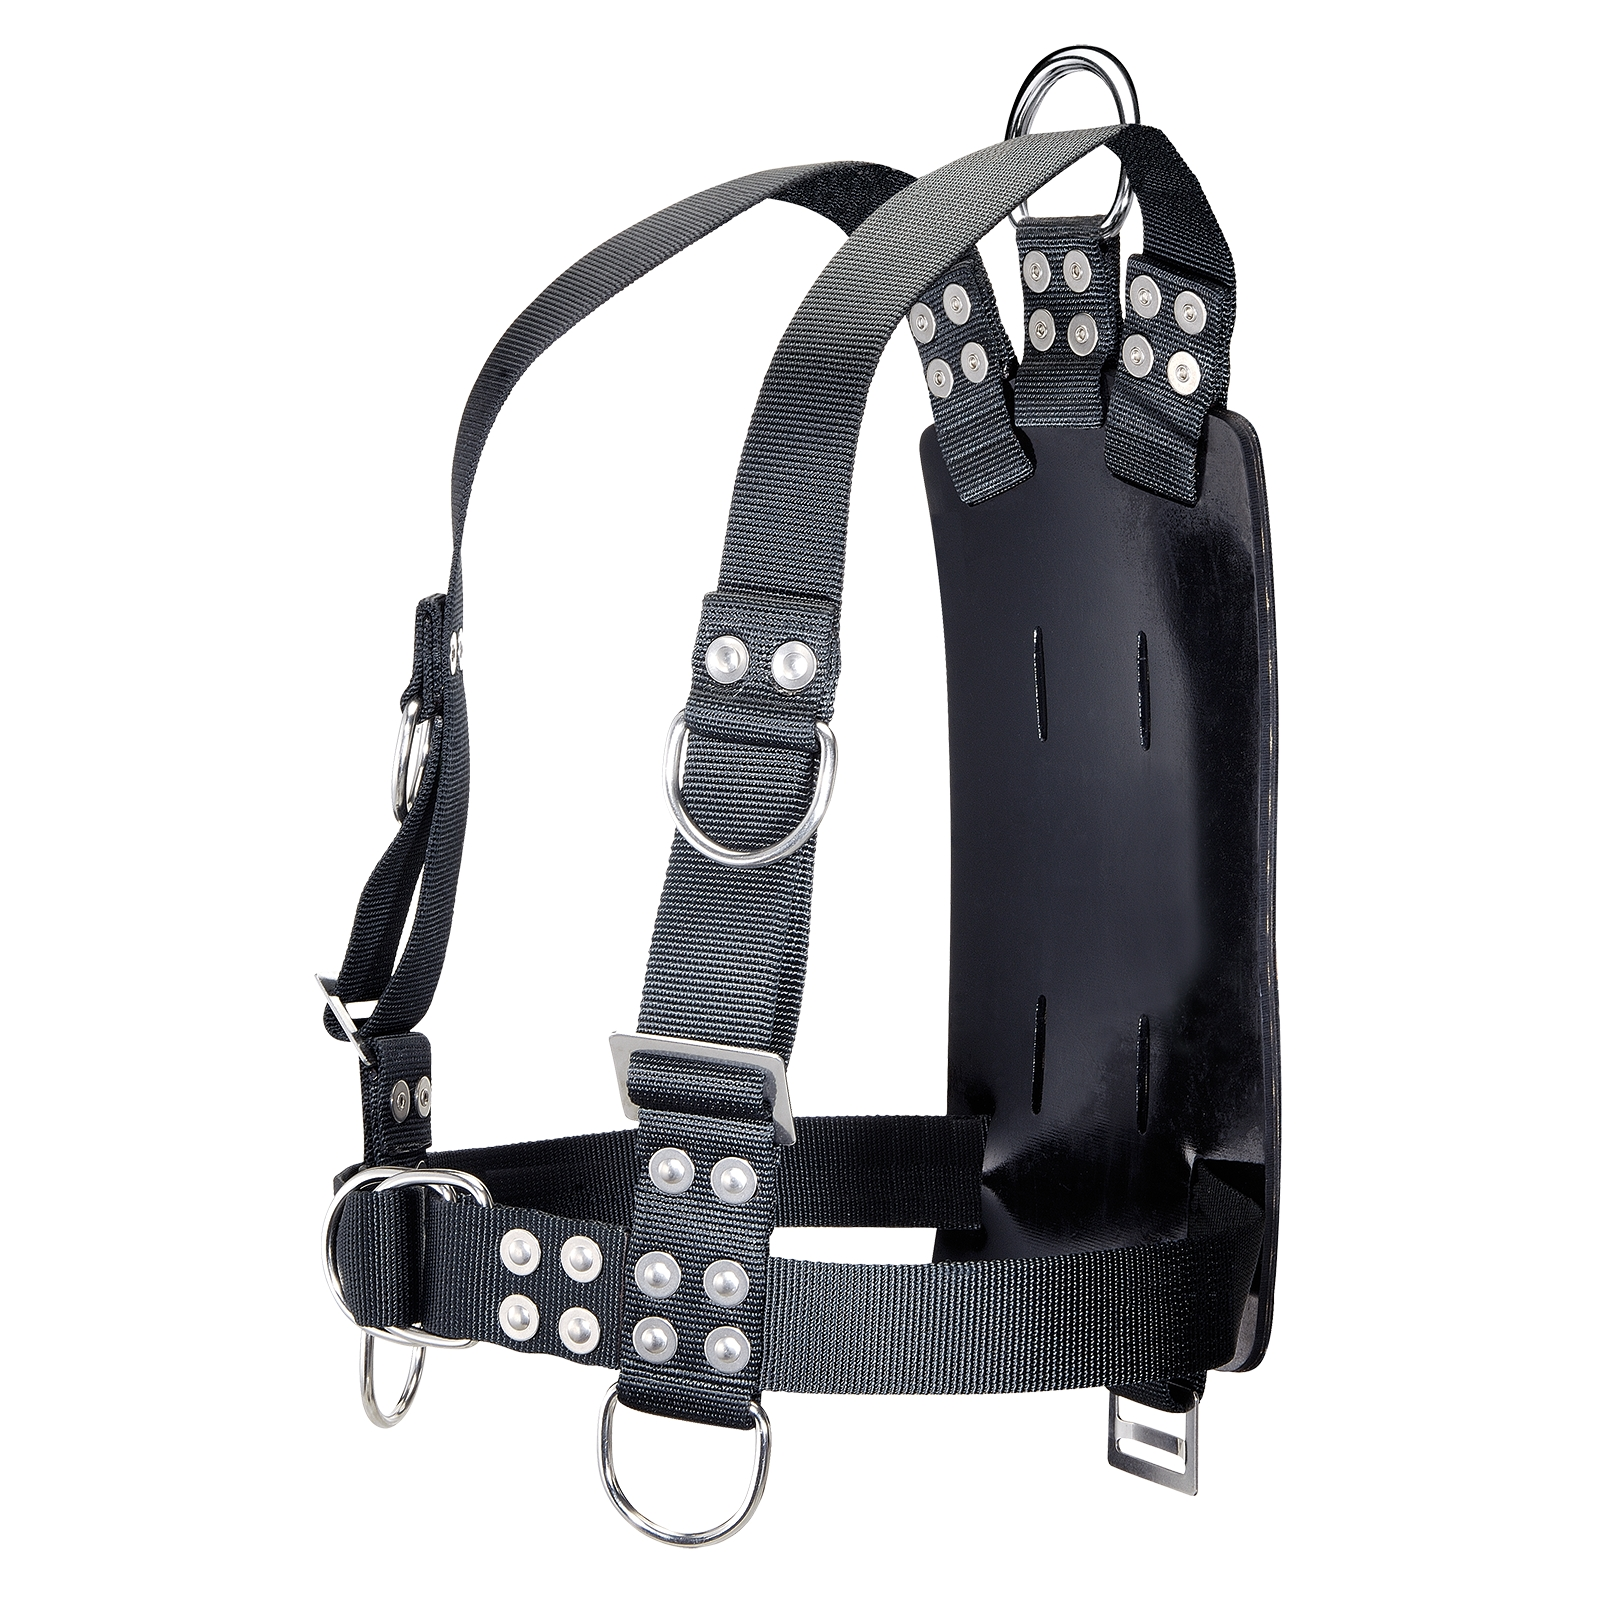 HHBP-I Commercial Diving Bell Harness